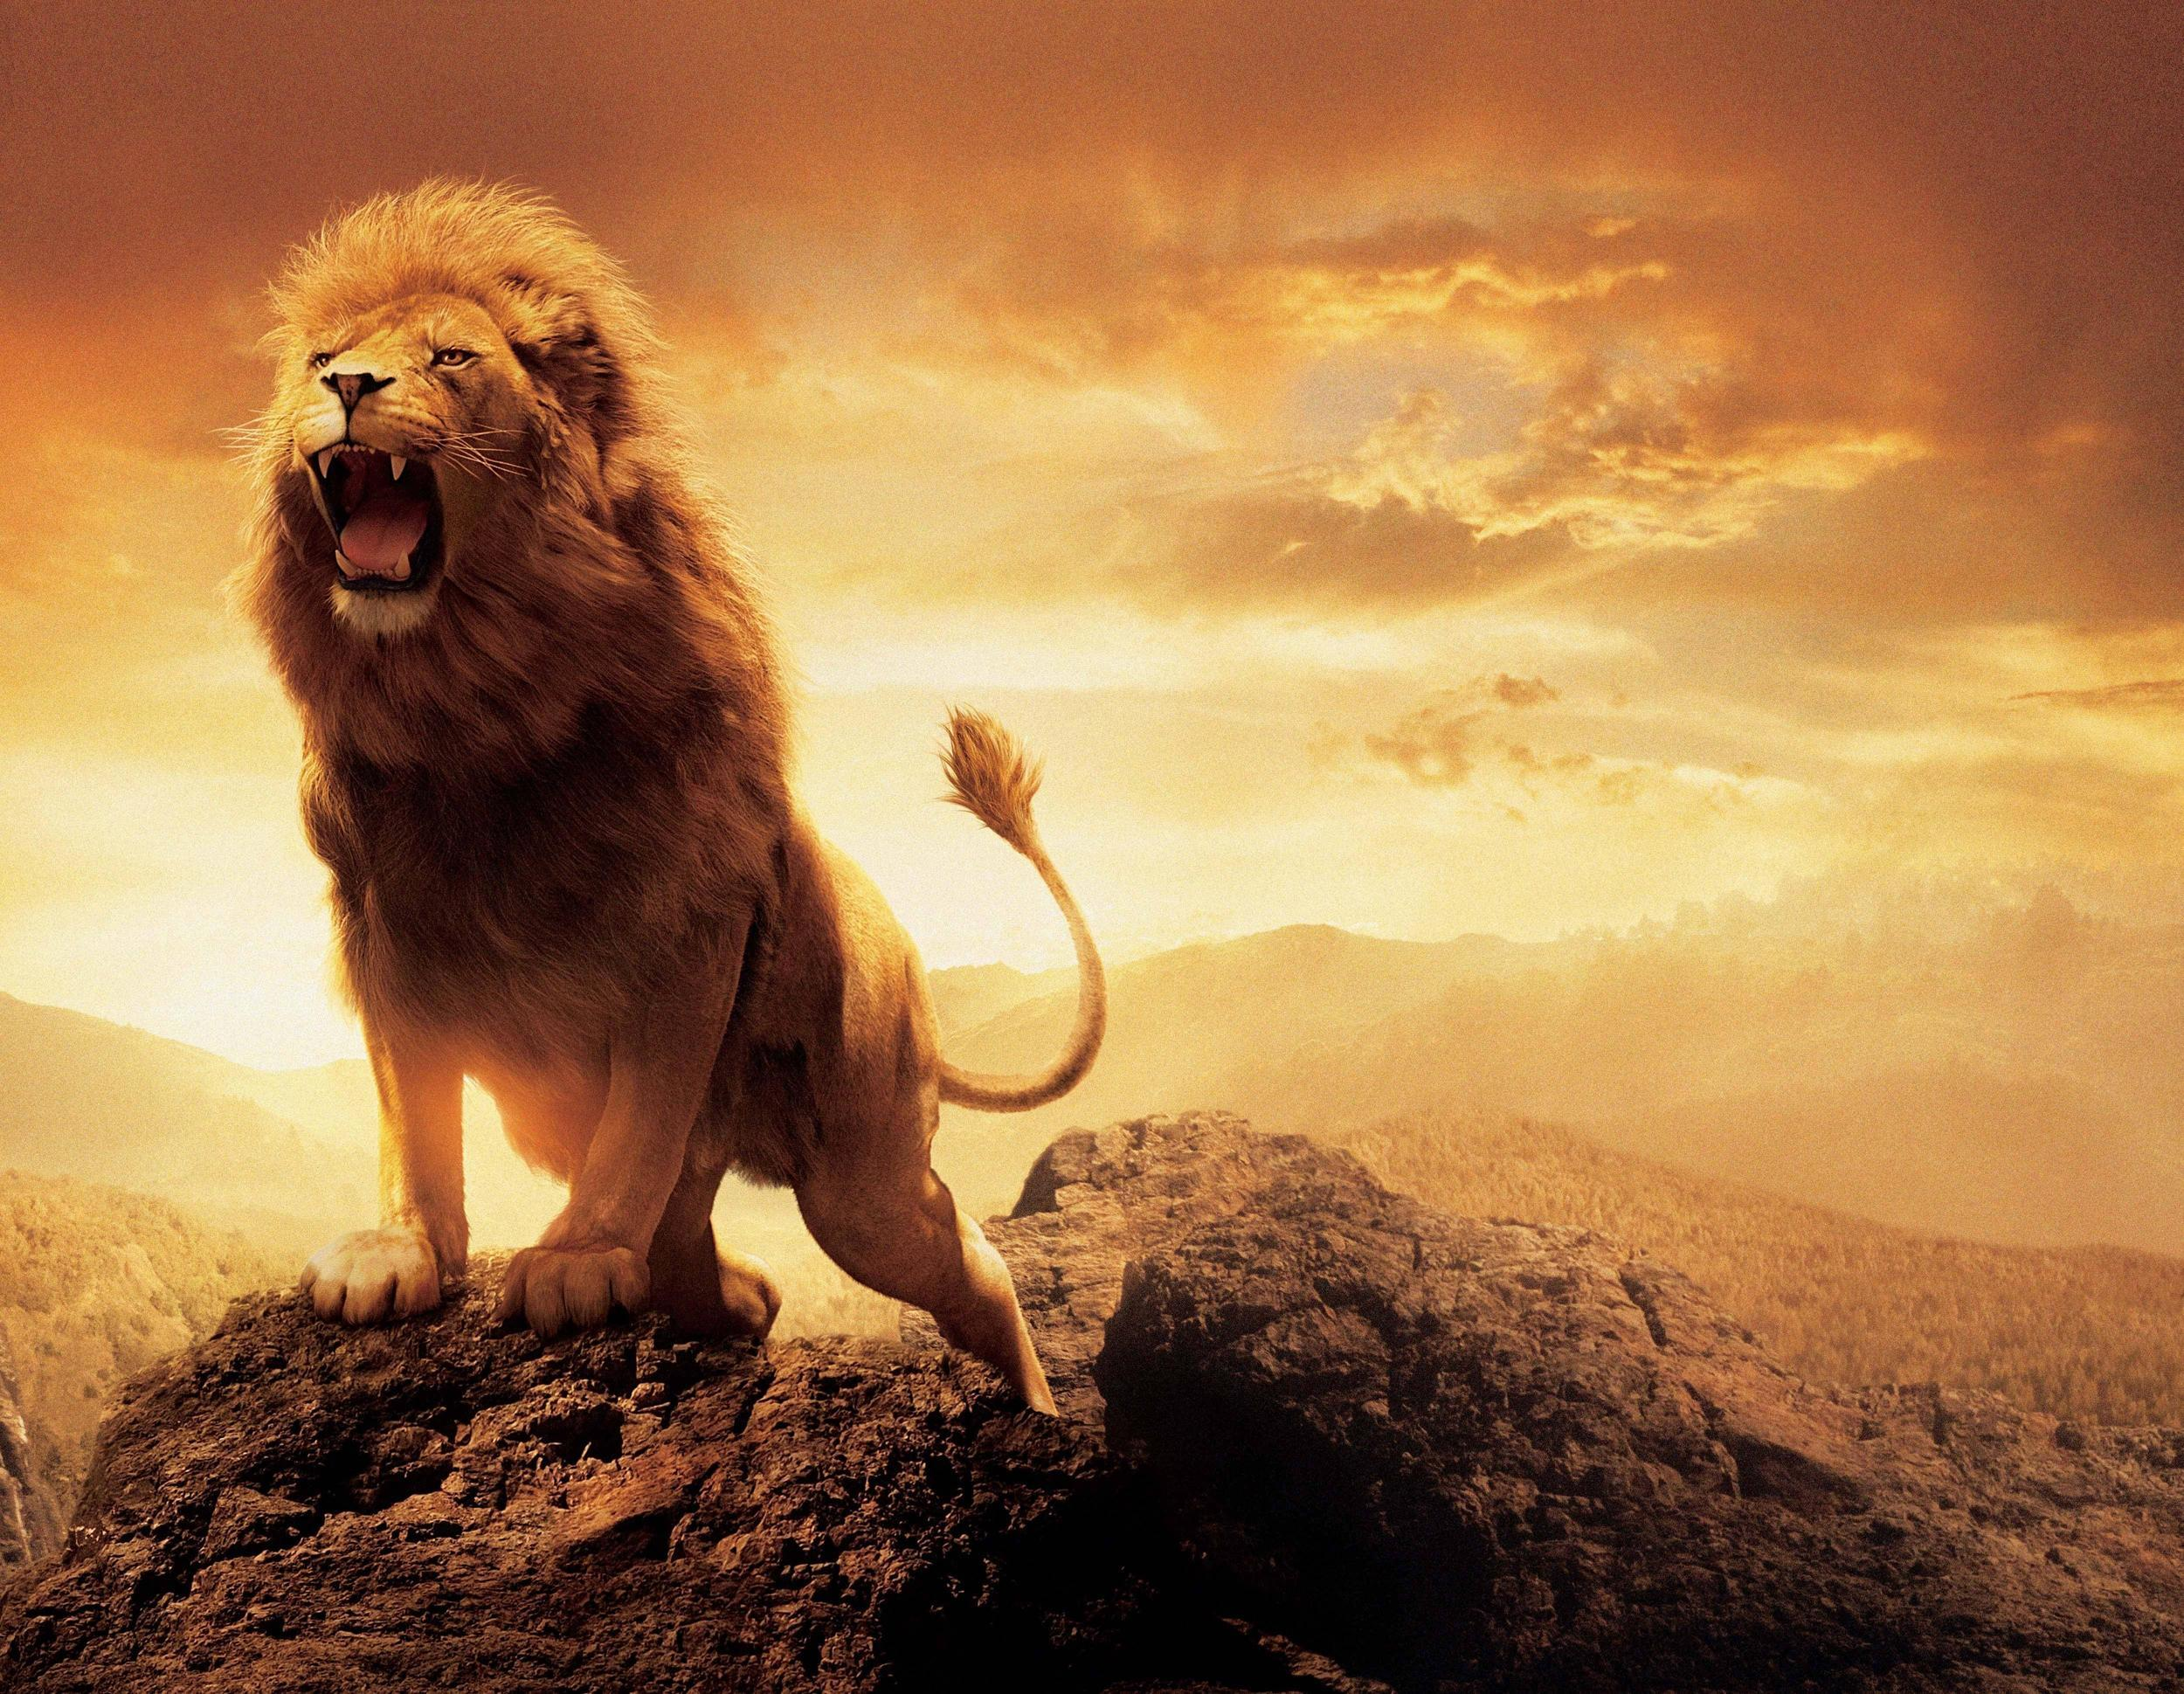 roaring lion wallpapers wallpaper cave